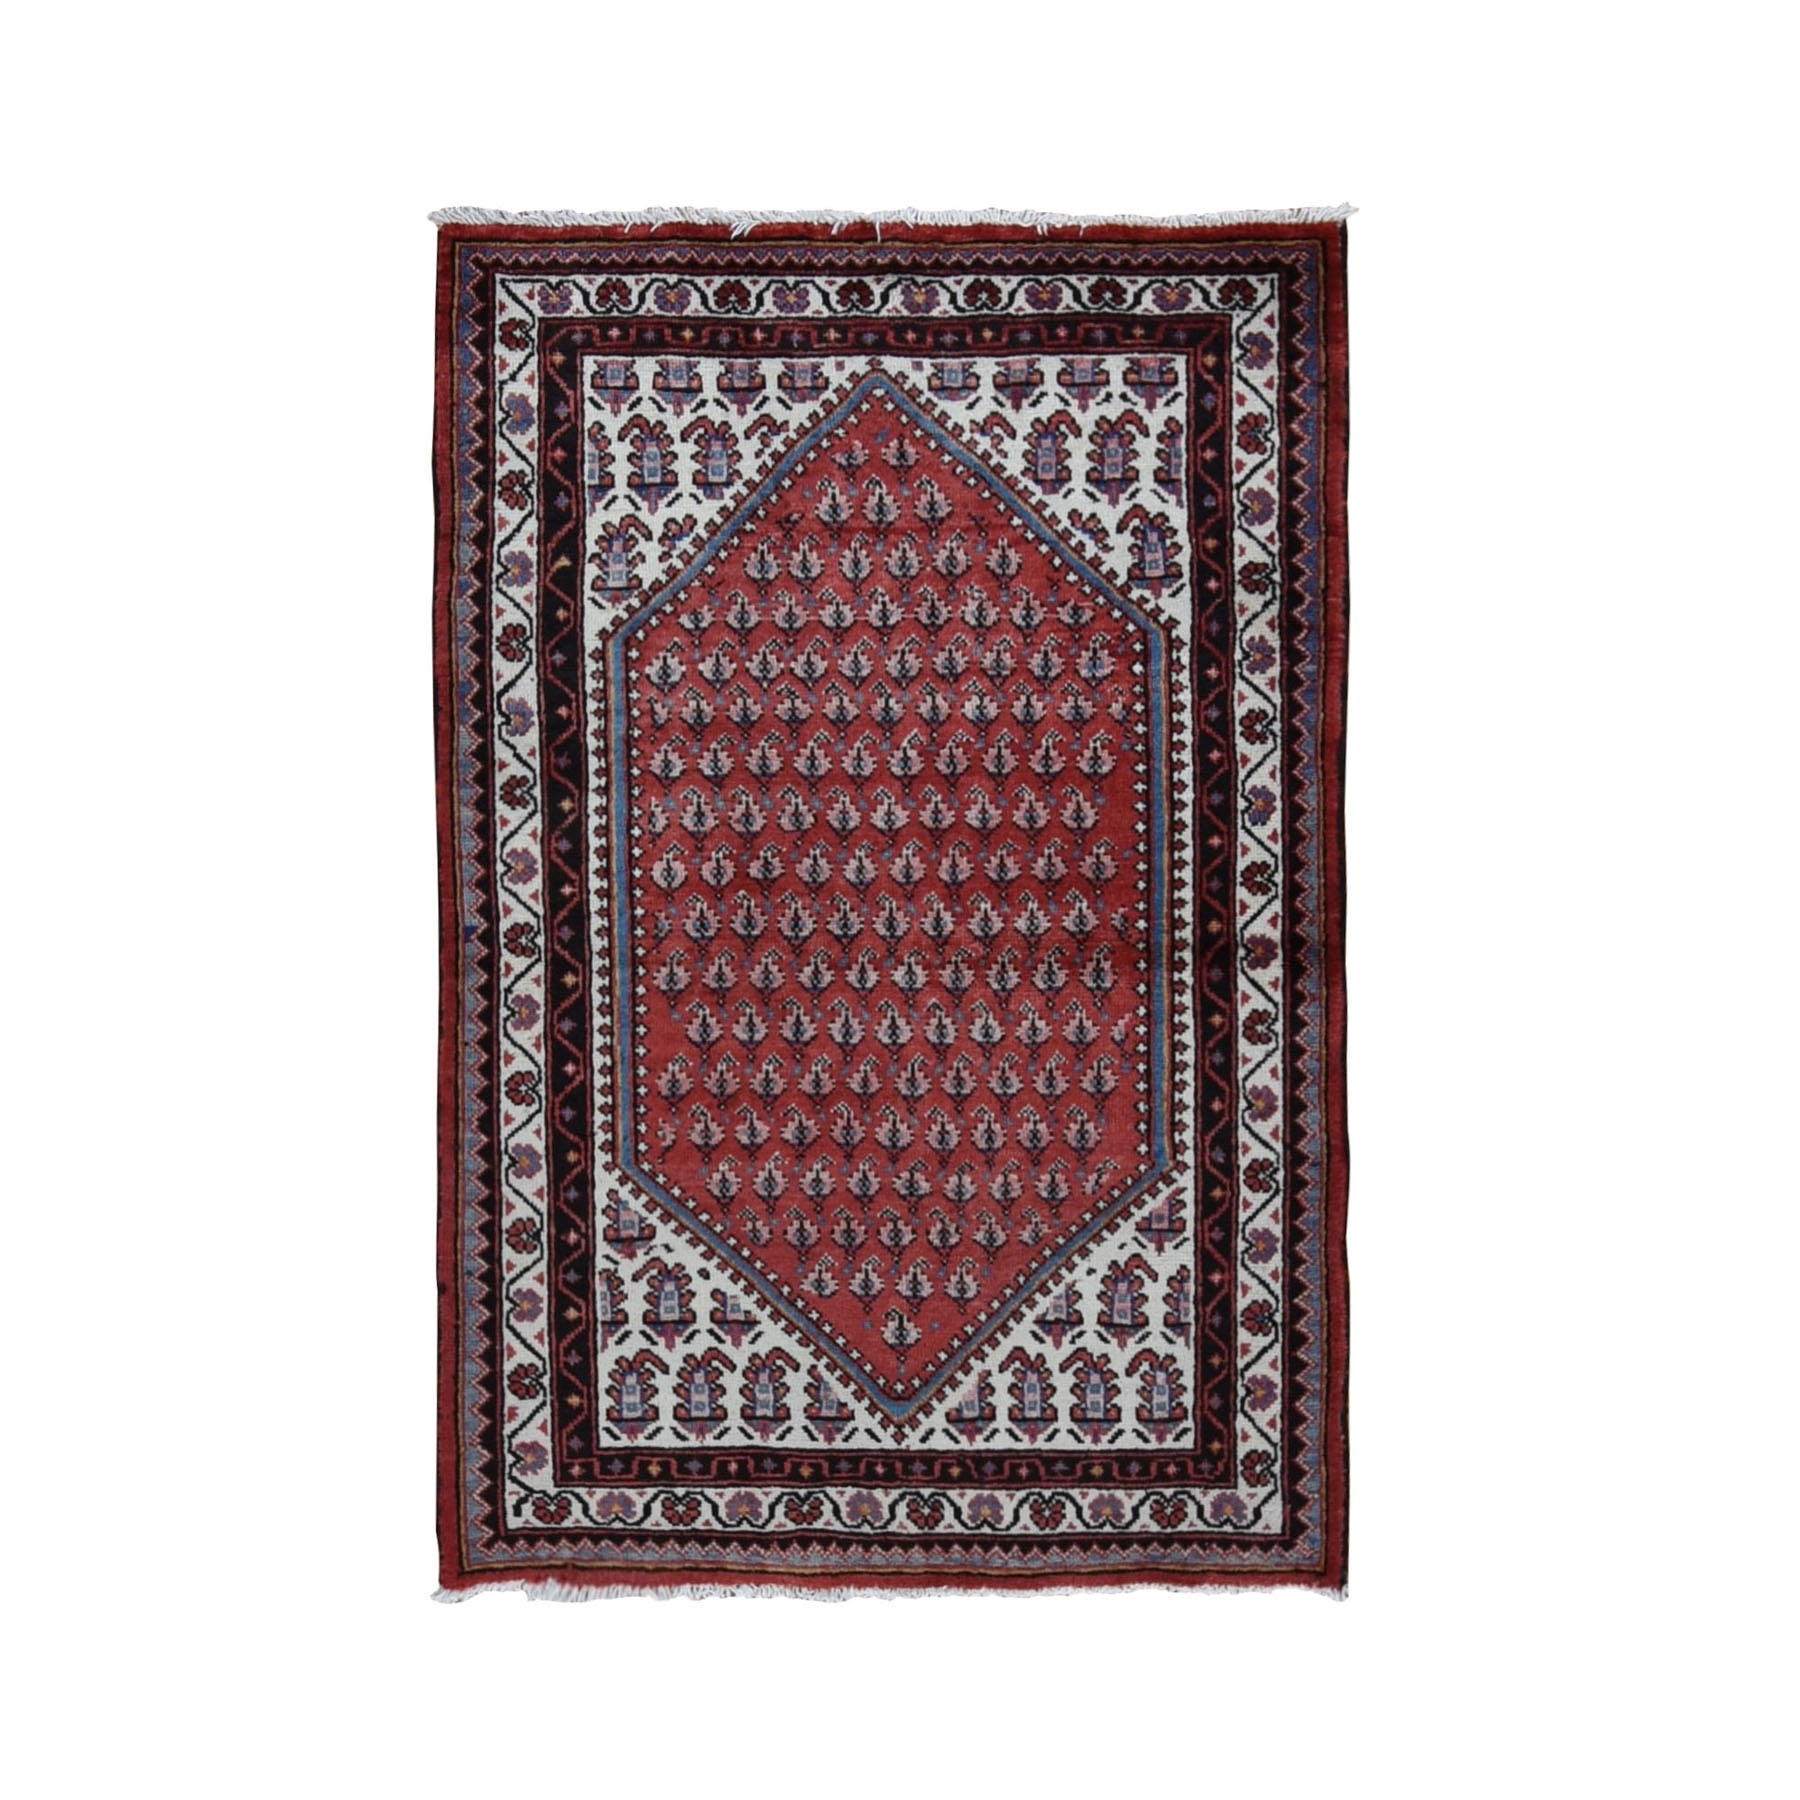 "3'5""x5'2""  Red Vinatge Pure Wool Sarouk Mir With Boteh Design Hand Knotted Oriental Rug"